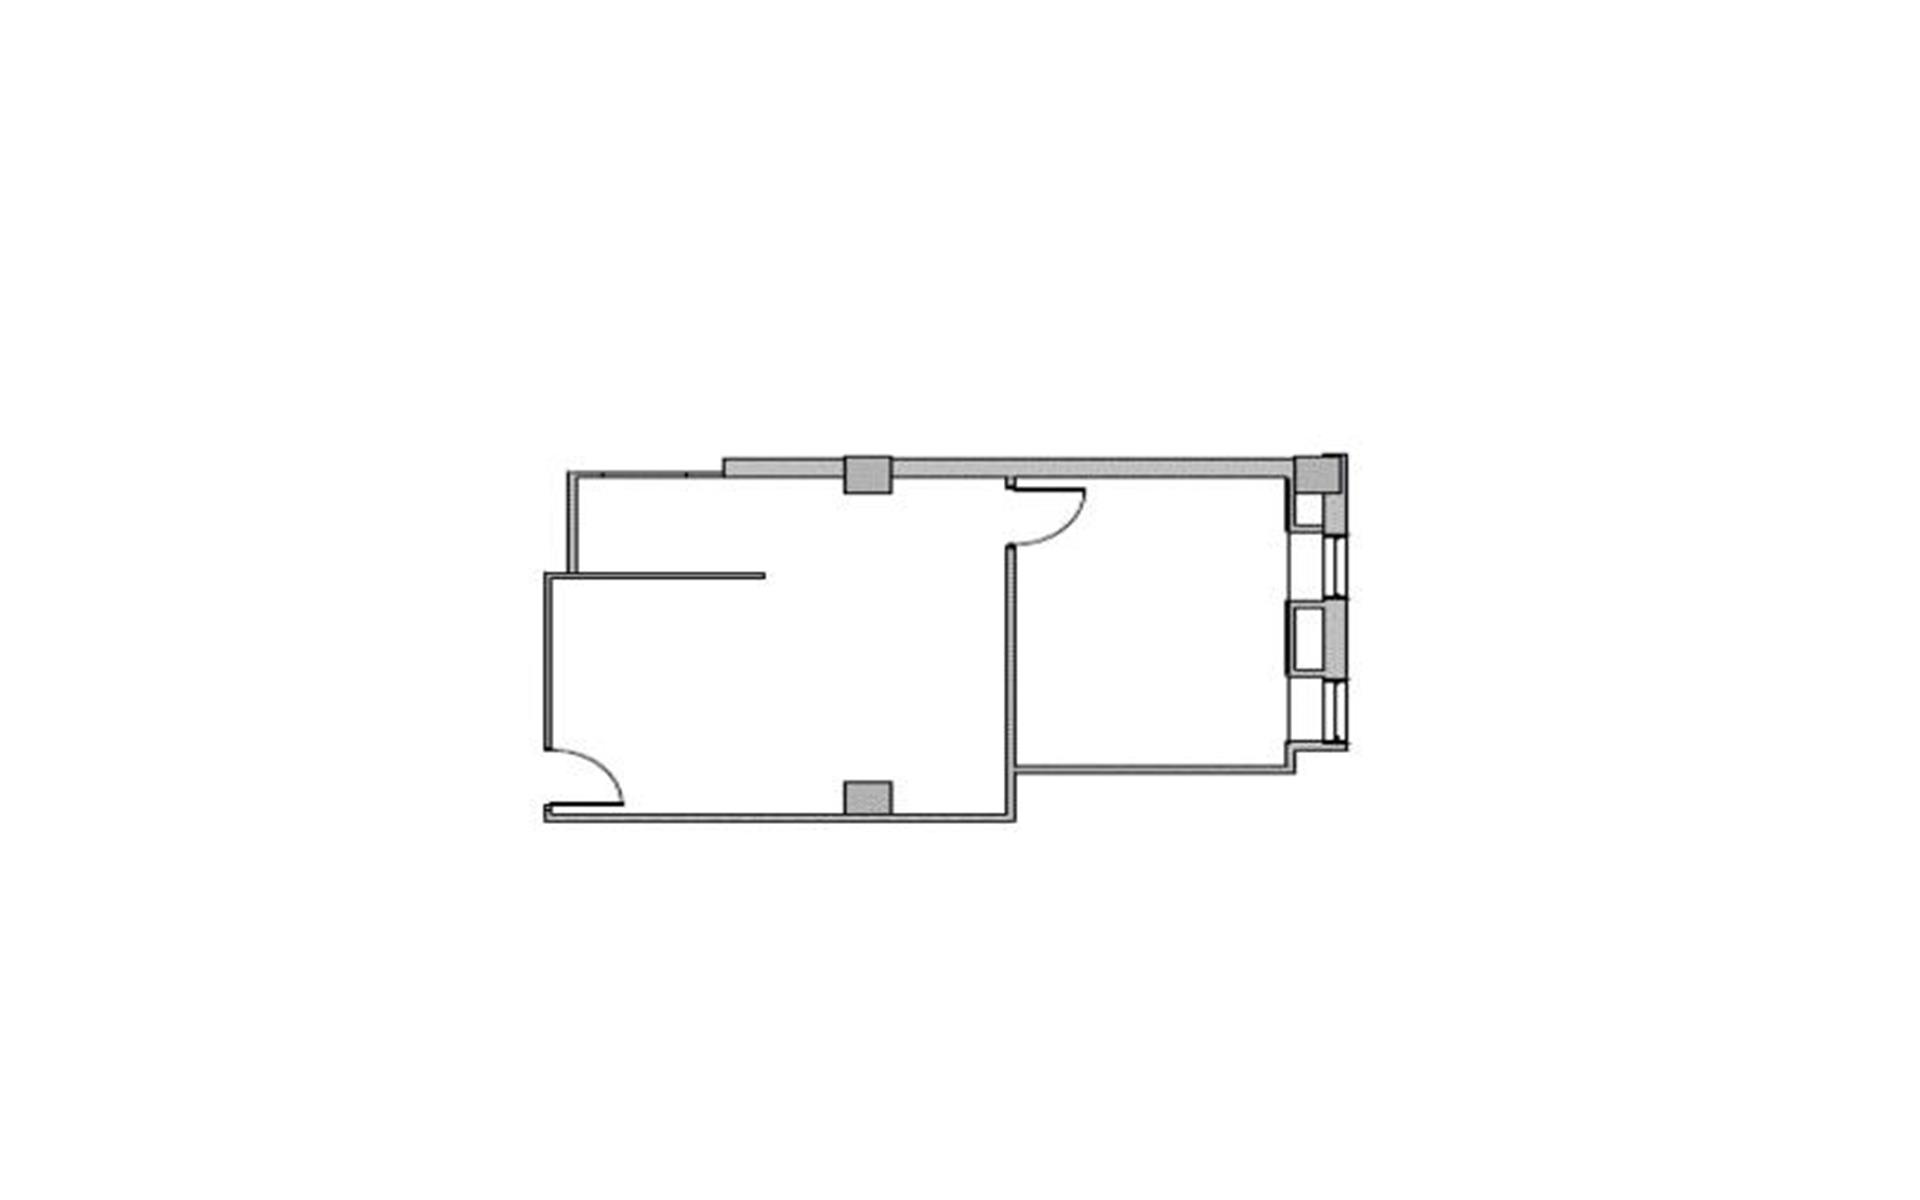 Boxer - 3100 East 45th Street - Team Space | Suite 430